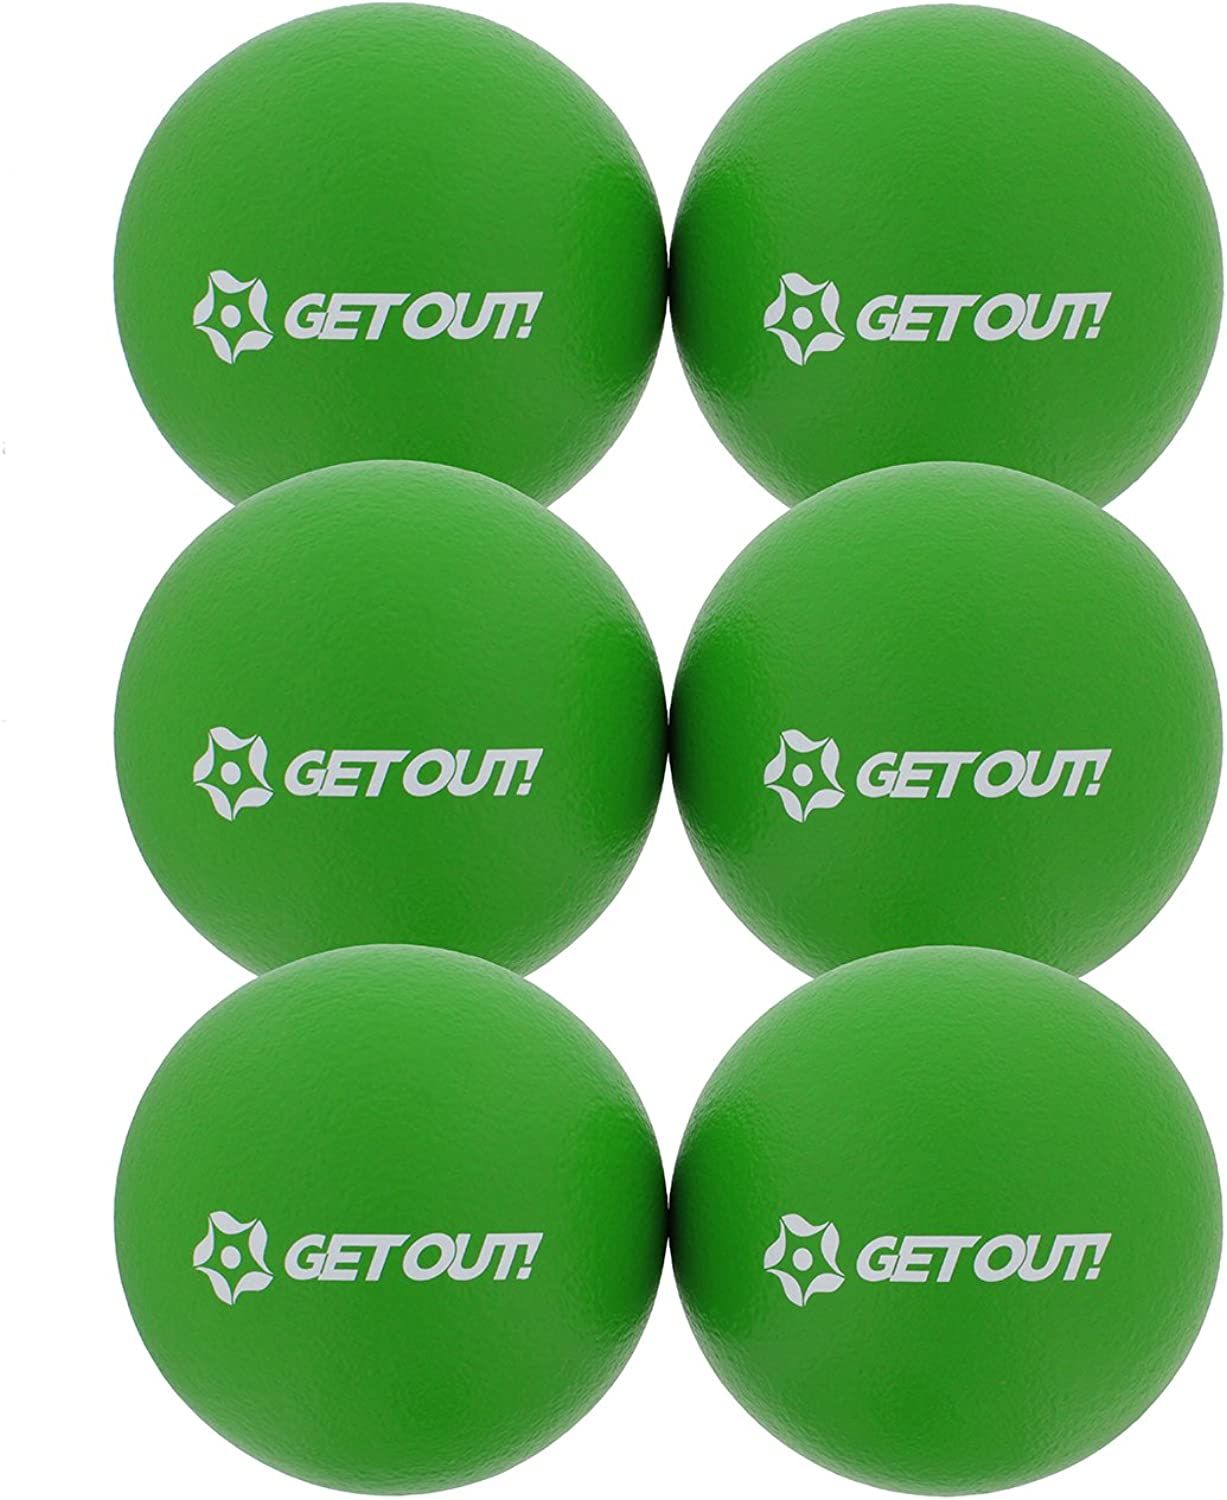 (Green)  Get Out 6  inch Foam Dodgeballs 6Pack Set  Soft, Lightweight, LatexFree Sponge Playground Dodgeball Balls